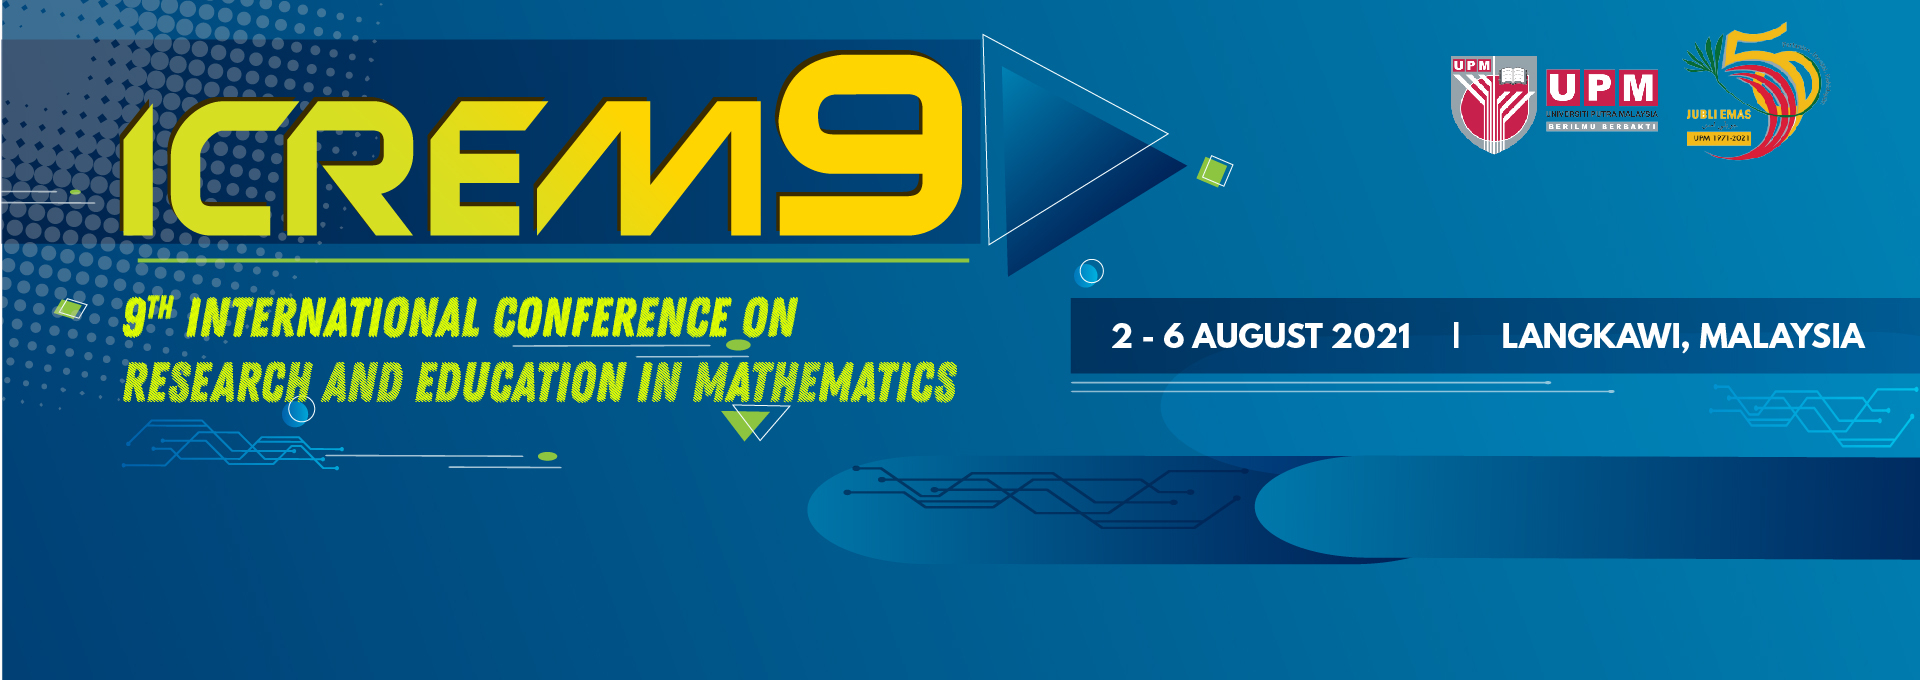 9th International Conference on Research and Education in Mathematics (ICREM9)